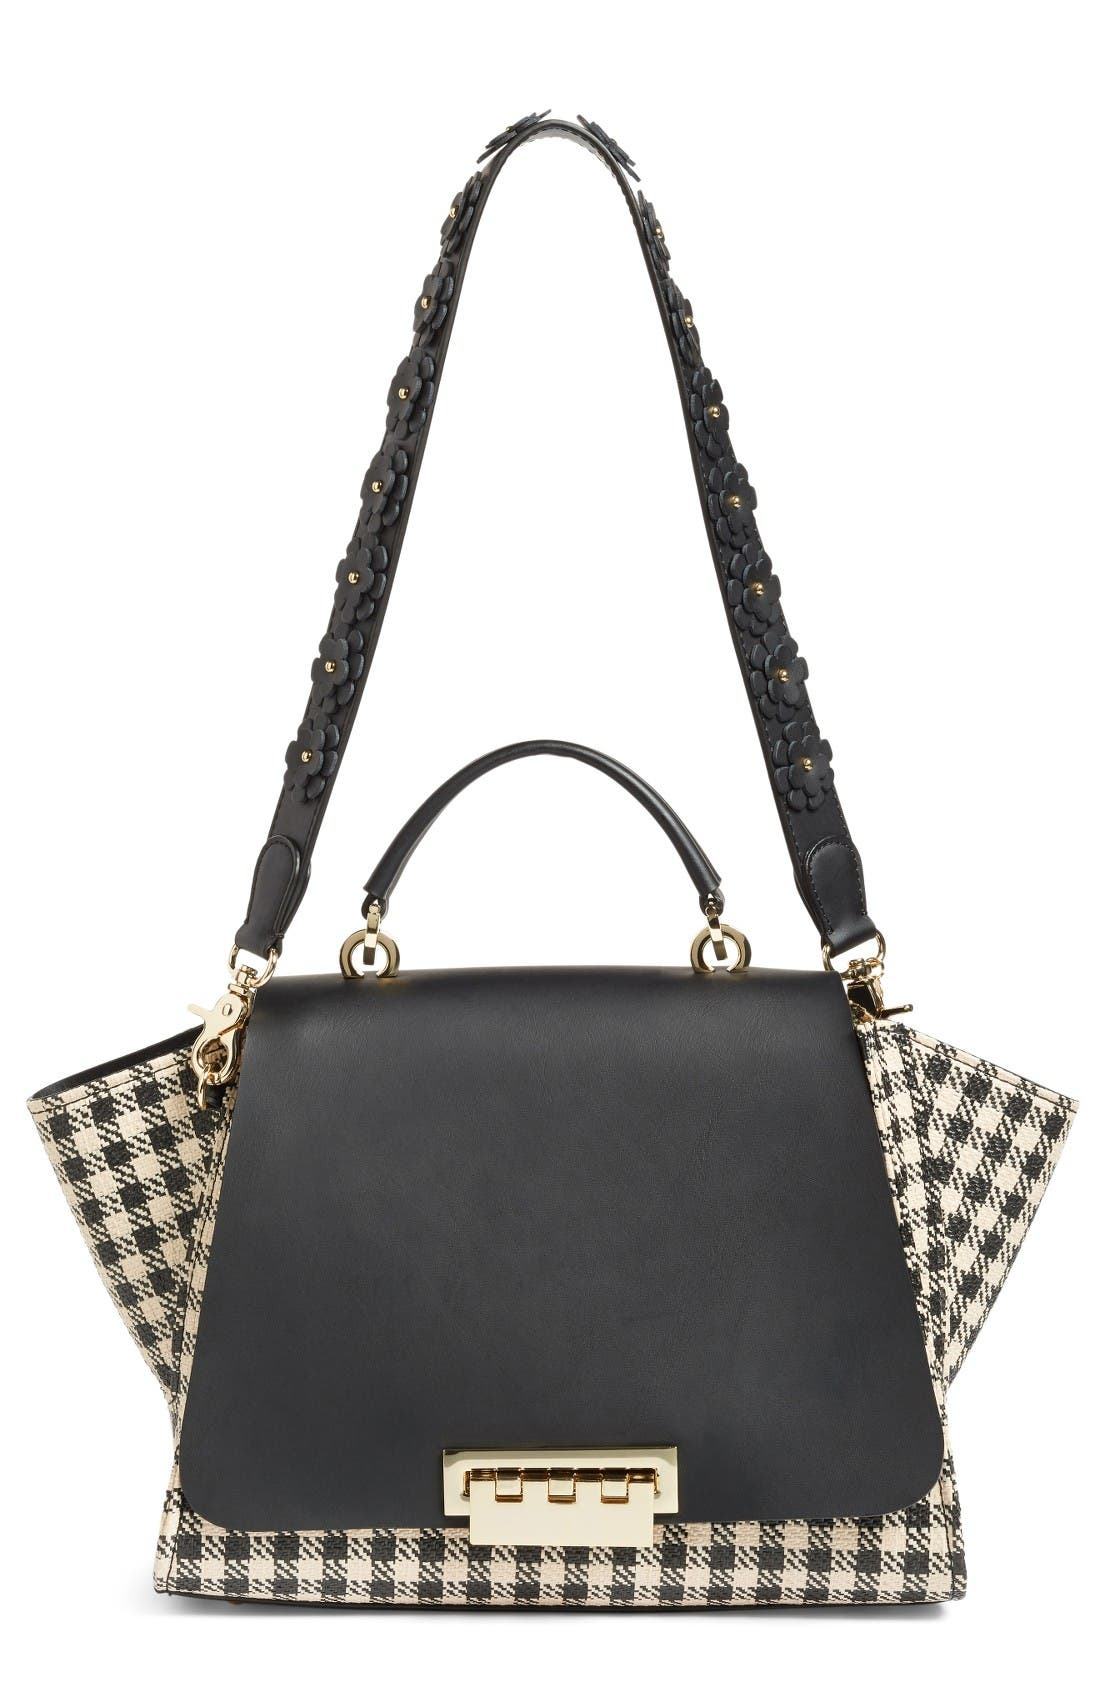 ZAC Zac Posen Eartha Gingham Straw Top Handle Satchel with Flower Guitar Strap